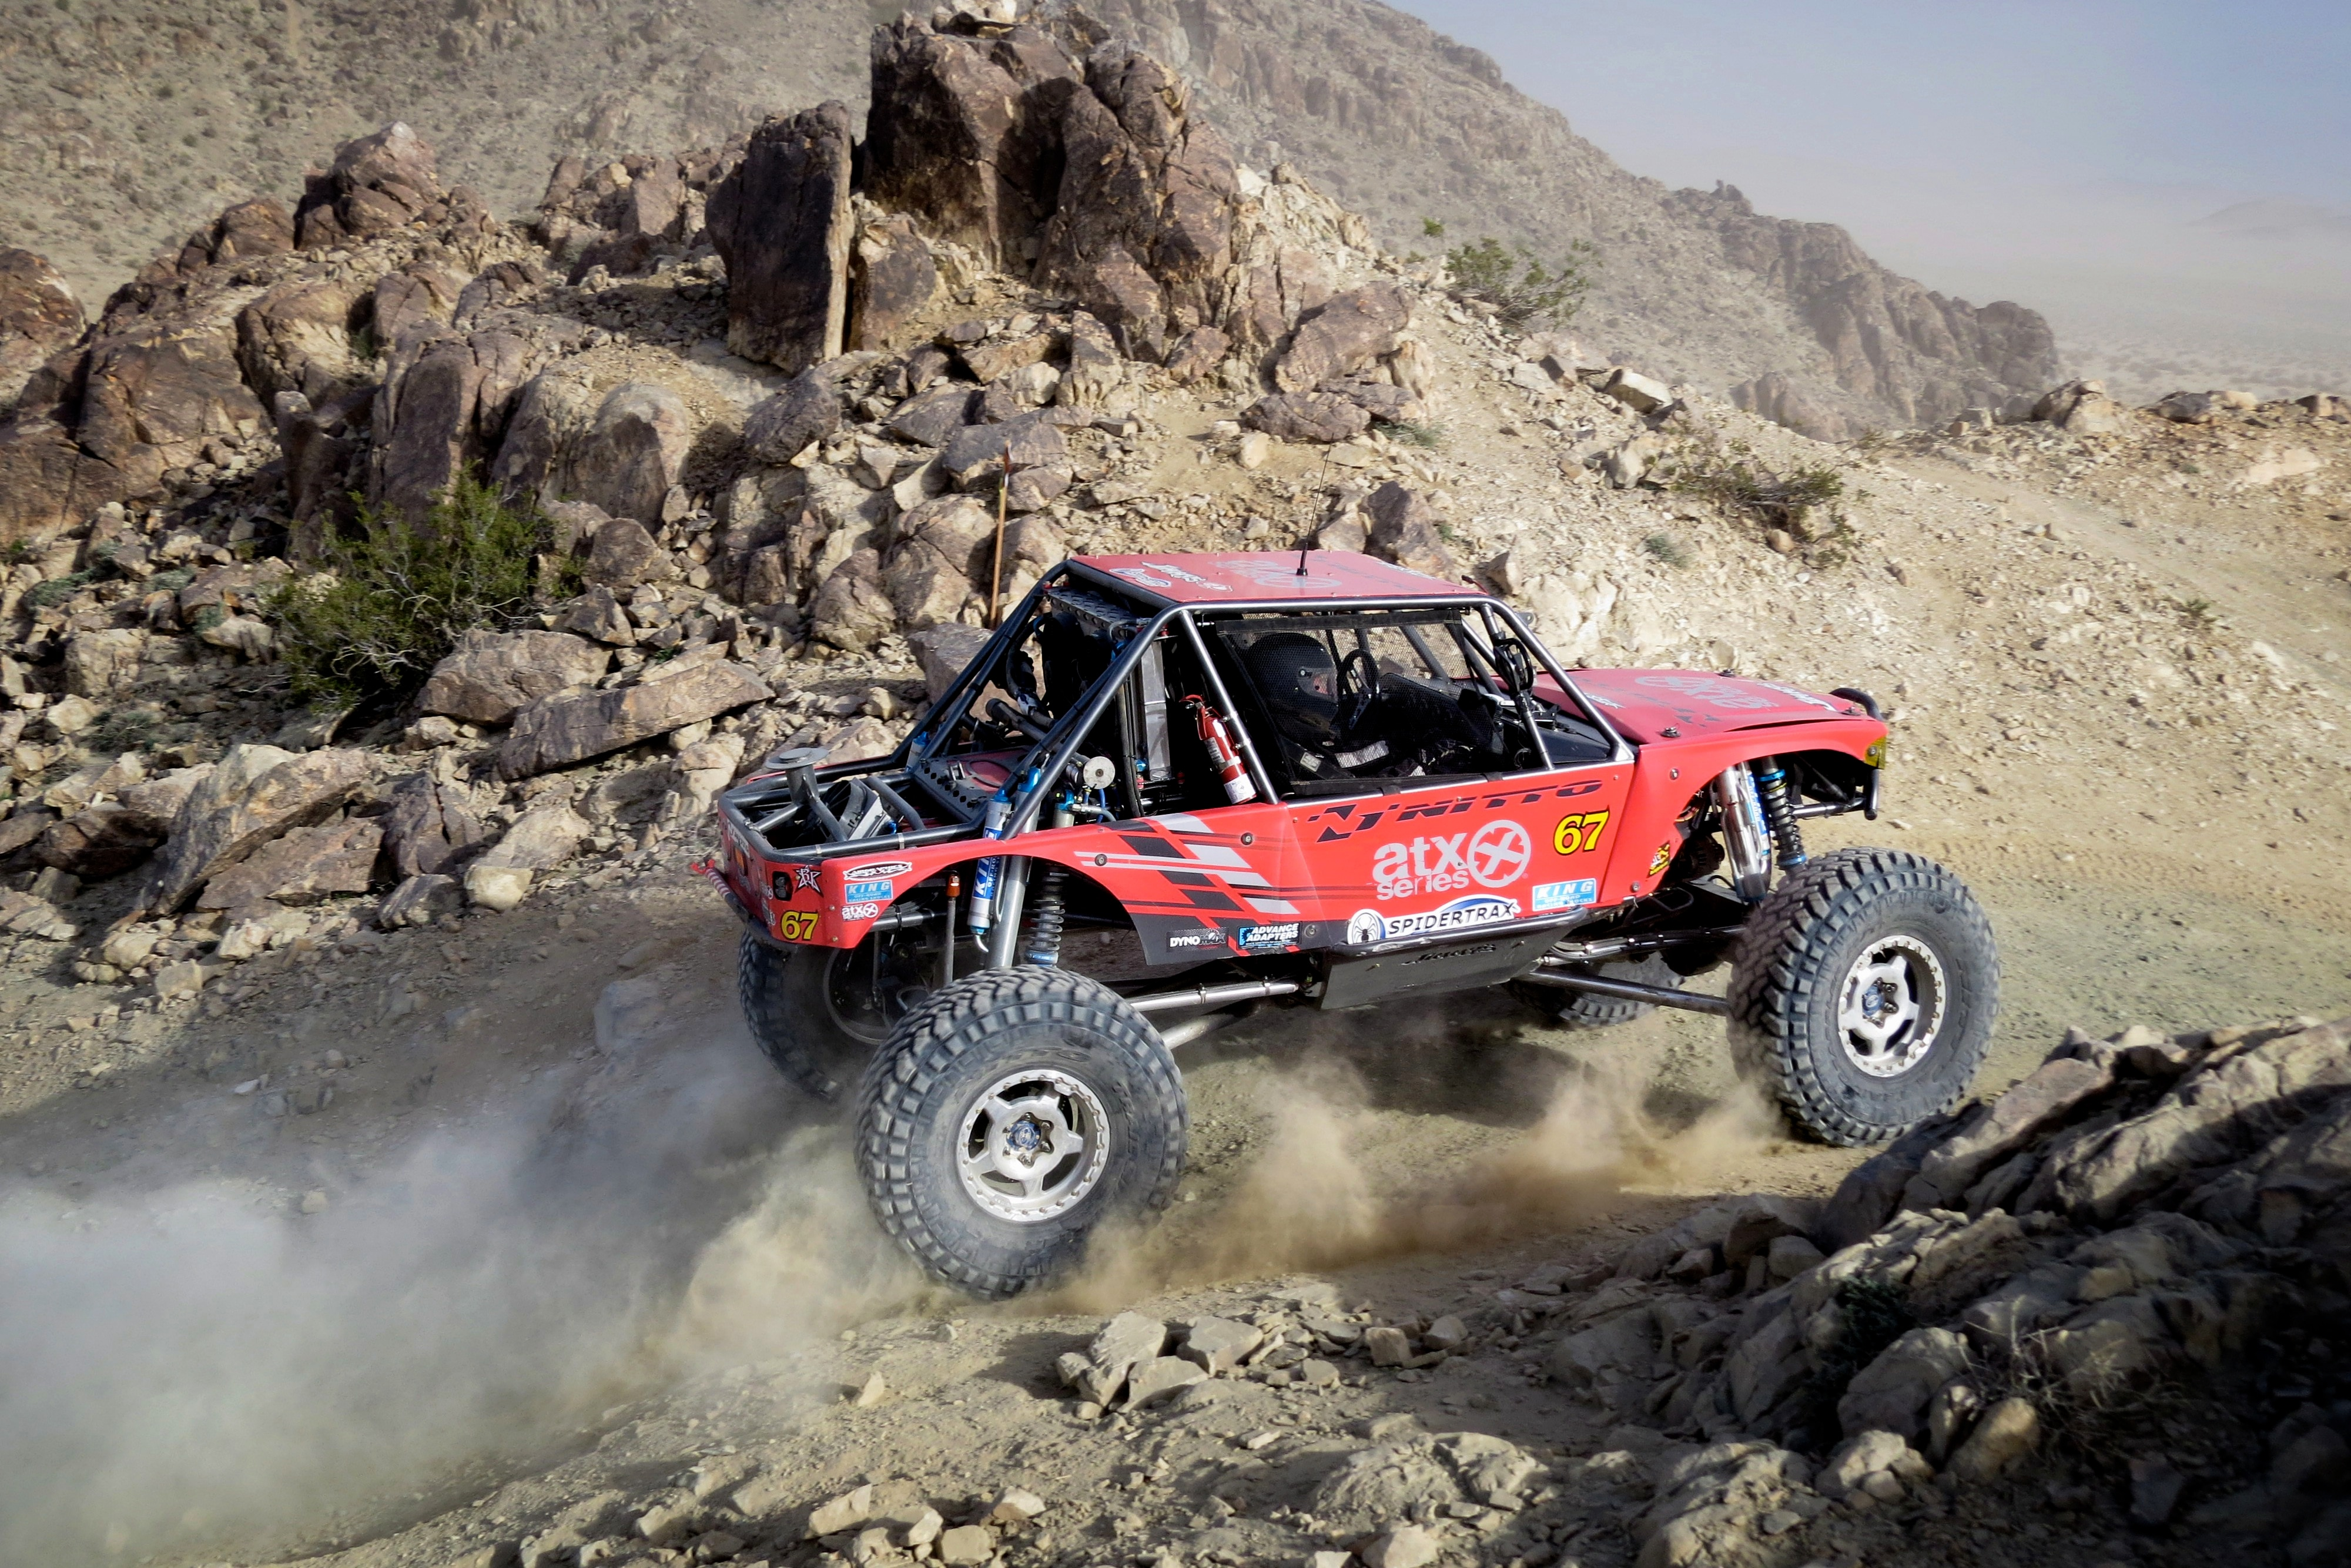 Loren Healy King of The Hammers 2014 Ultra4 Winner Loren Healy Racing at King of The Hammers